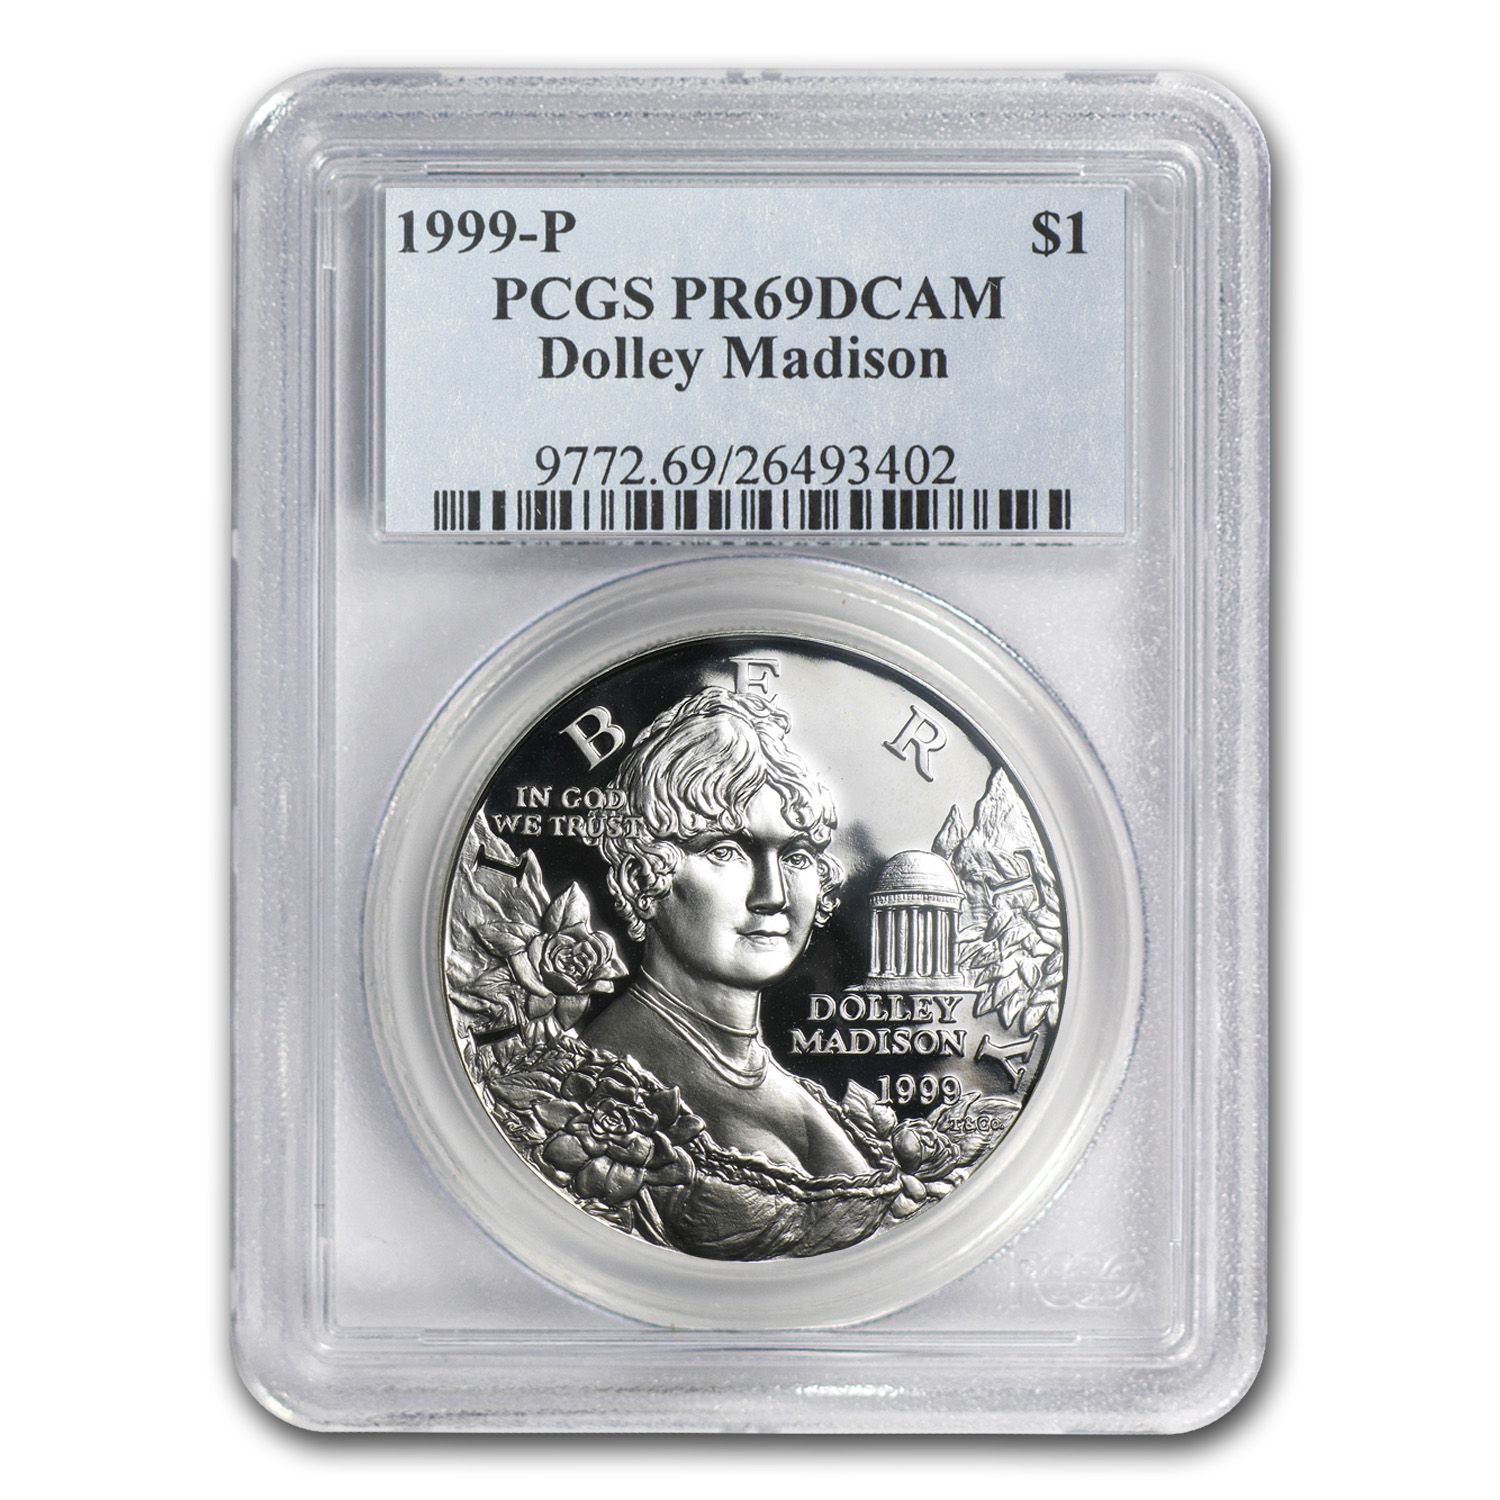 1999-P Dolley Madison $1 Silver Commemorative PR-69 PCGS